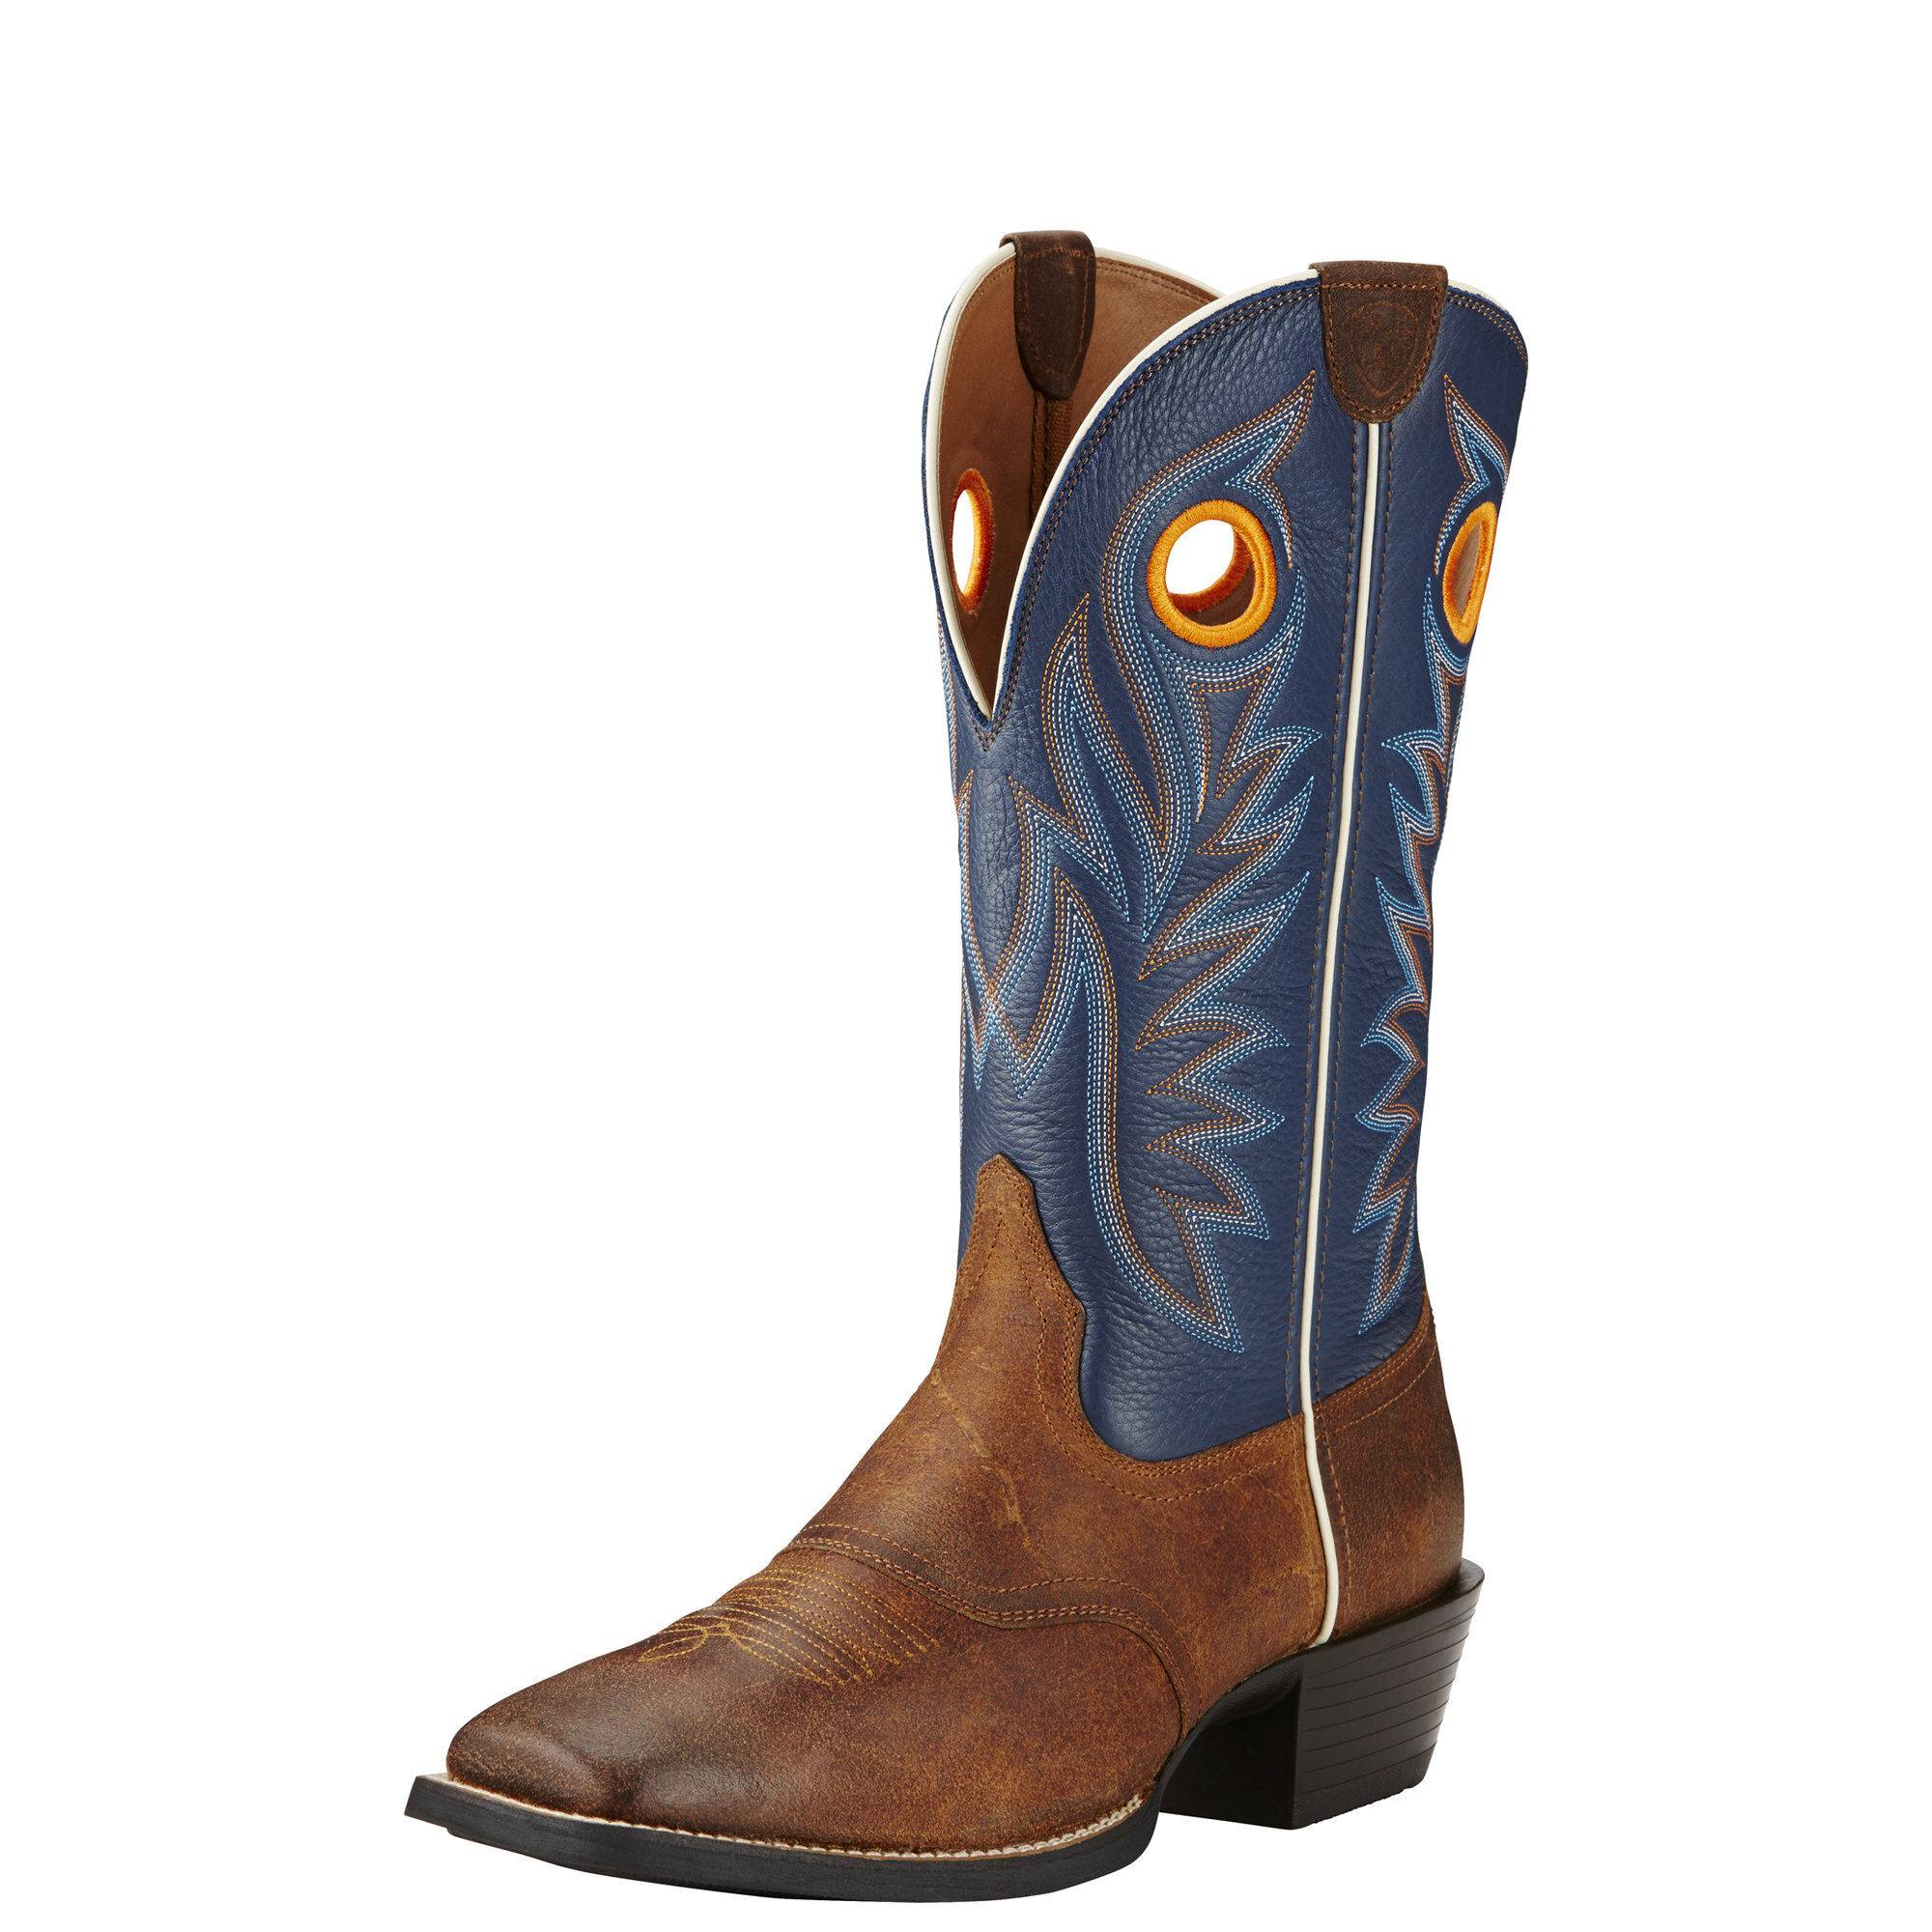 Ariat Men's Sport Outrider Western Boots in Pinecone Leather, Size 9.5 D / Medium by Ariat